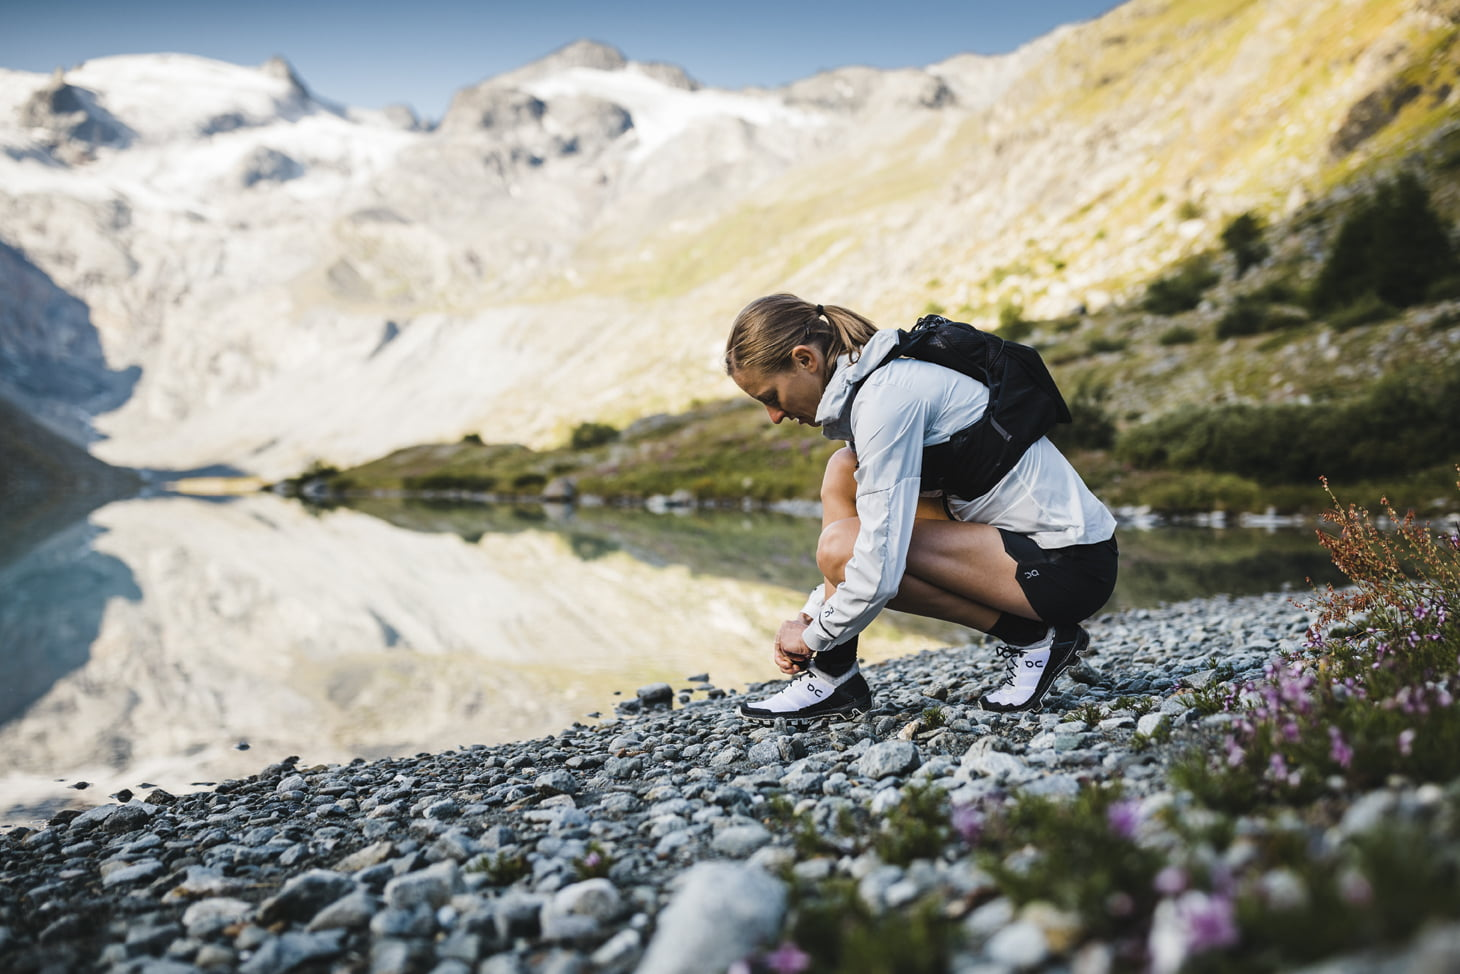 Bernina Tour – Trailrunning